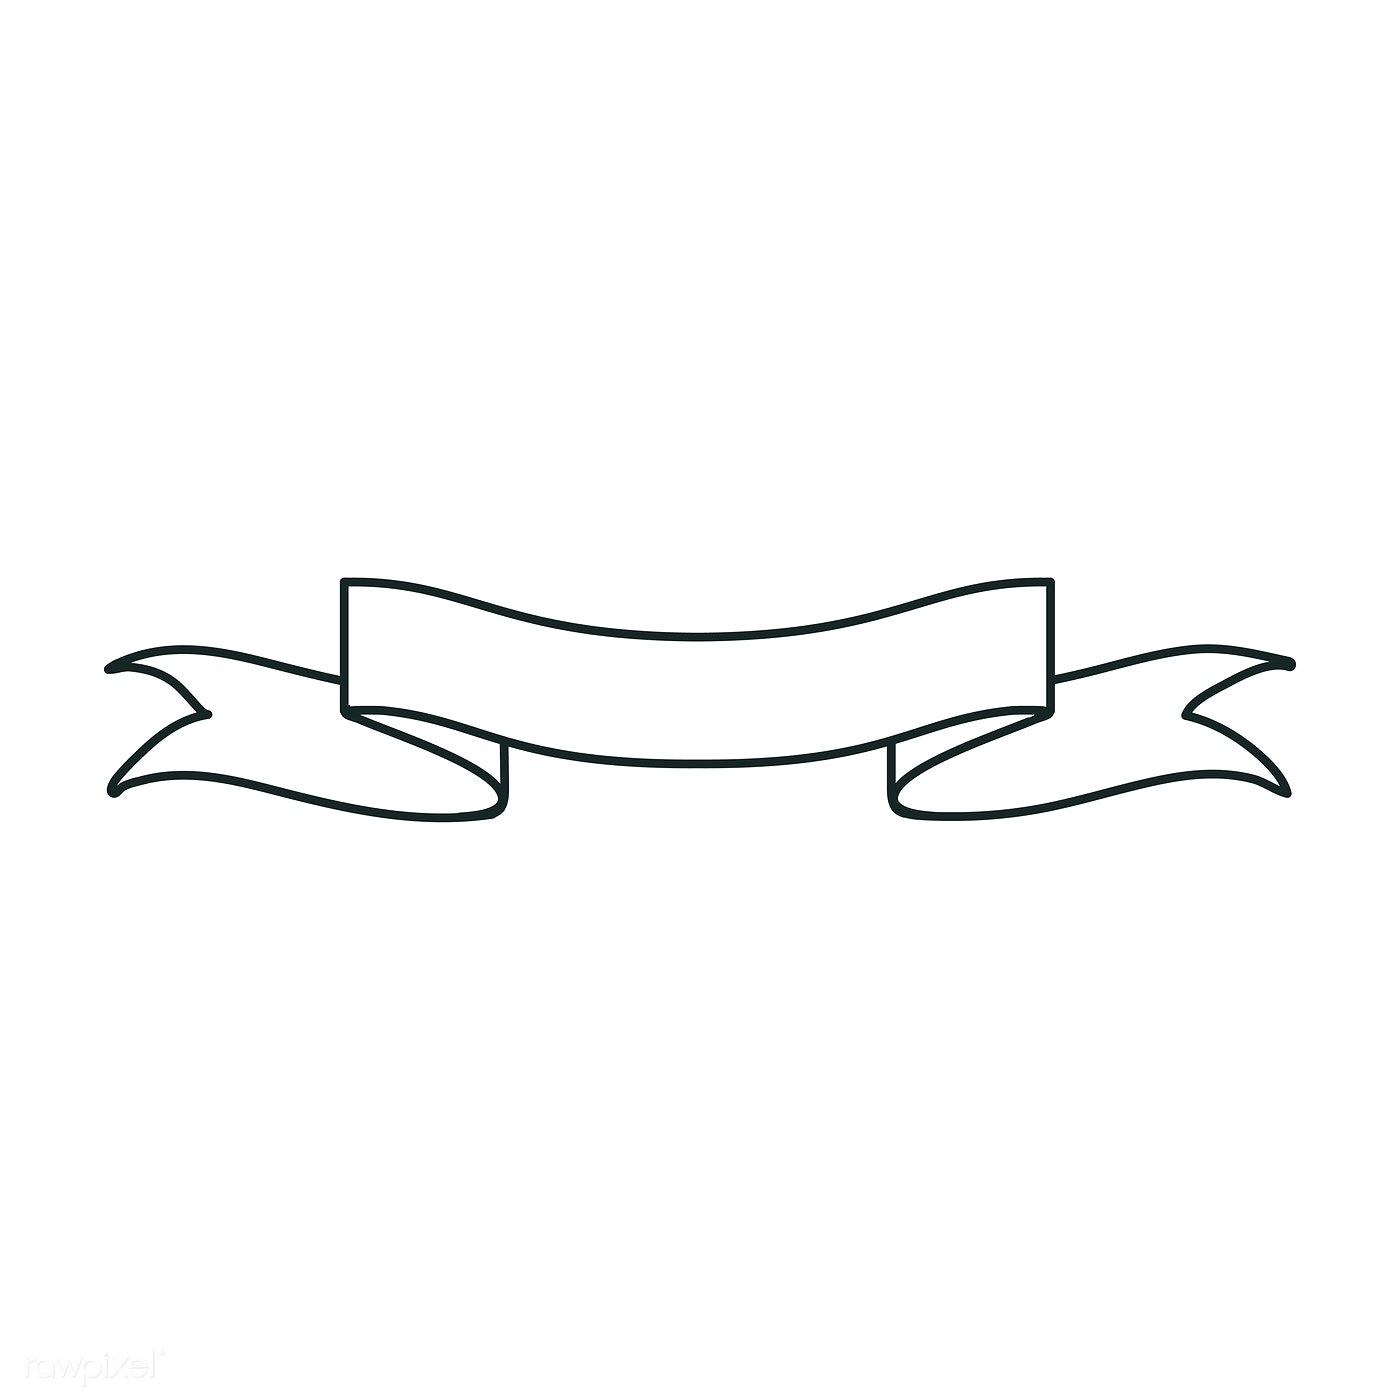 white ribbon banner doodle style vector | free image by rawpixel.com / aum  | banner doodle, ribbon banner, ribbon png  pinterest